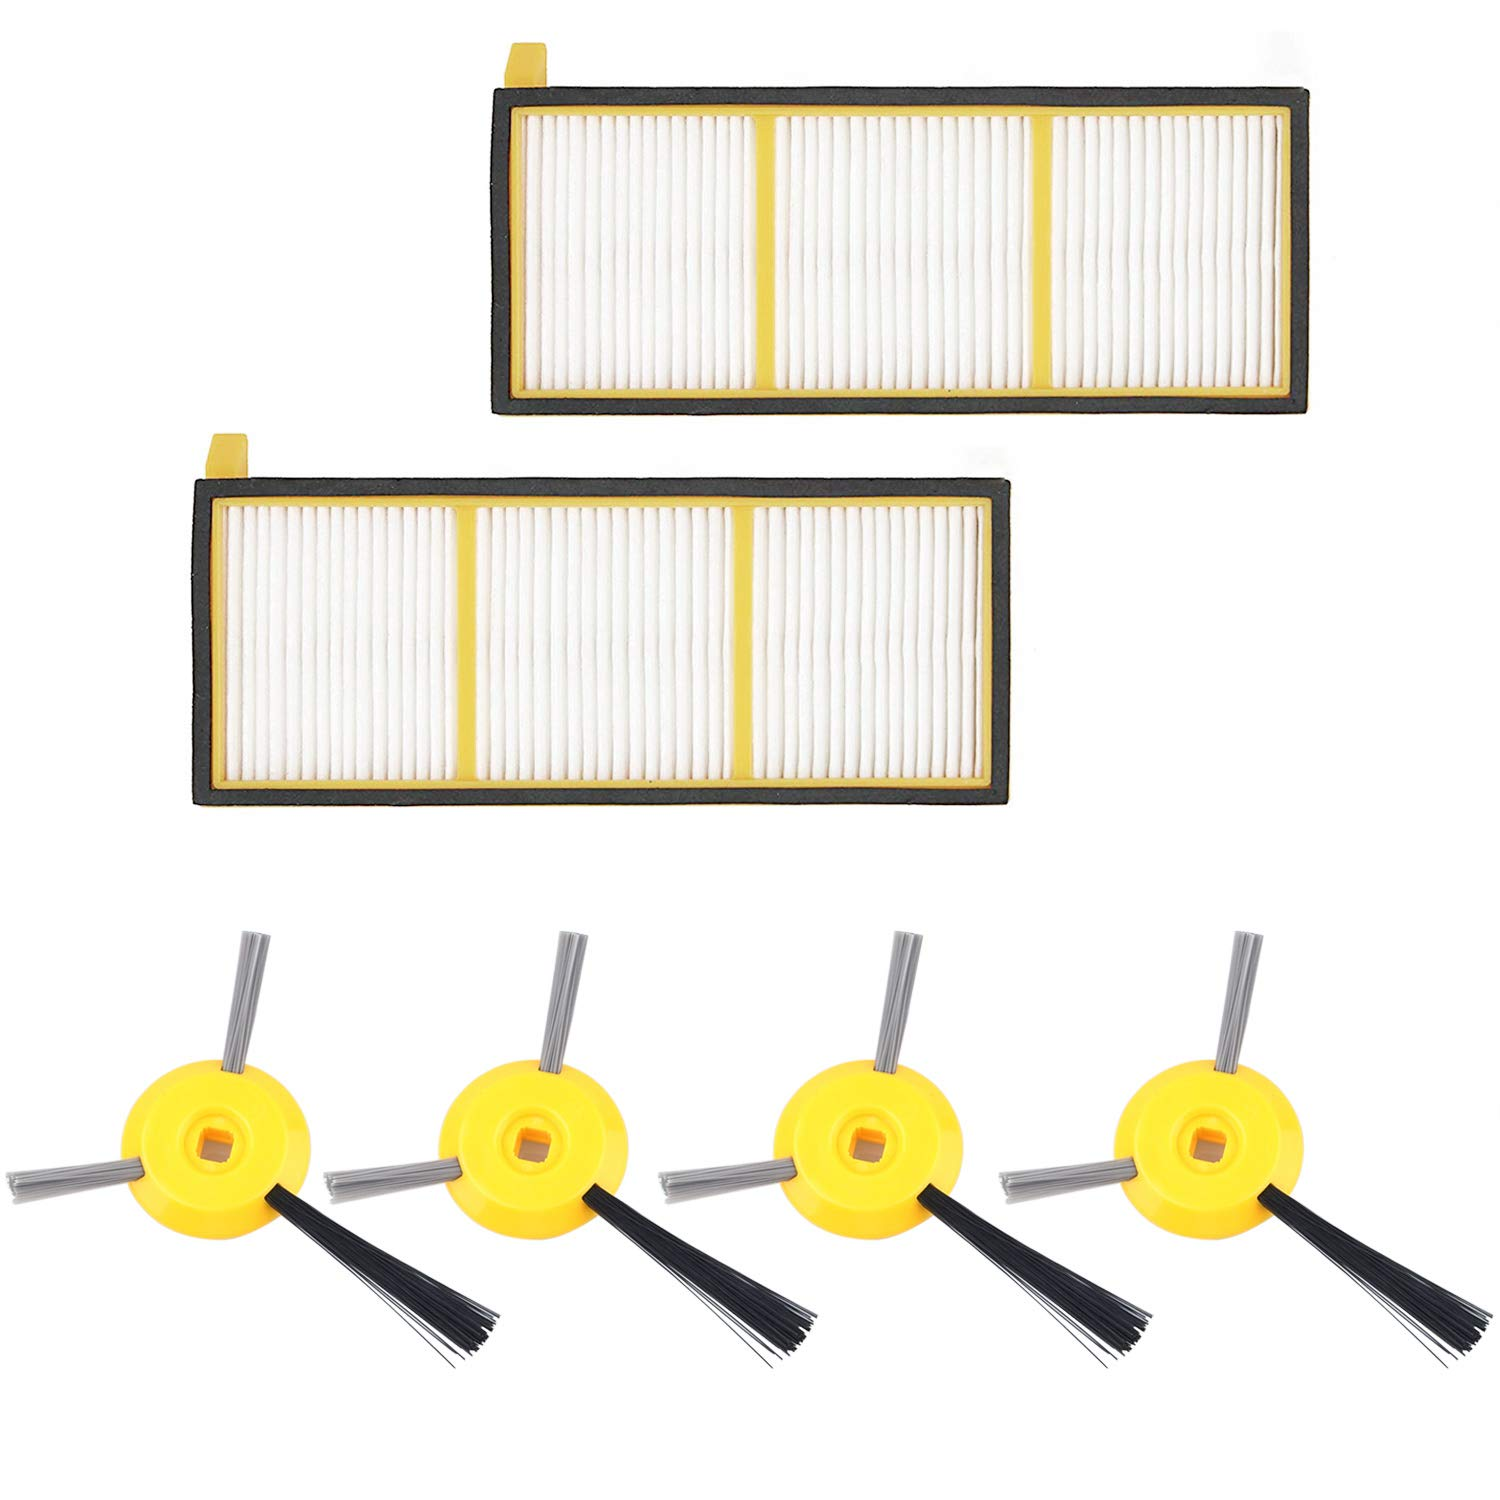 Home Appliance Parts Honest New-vacuum Filter And Side Brushes Replacement Kit For Shark Ion Robot Rv700 Rv720 Rv750 Rv750c Rv755 includes 4 Side Brushes With The Best Service